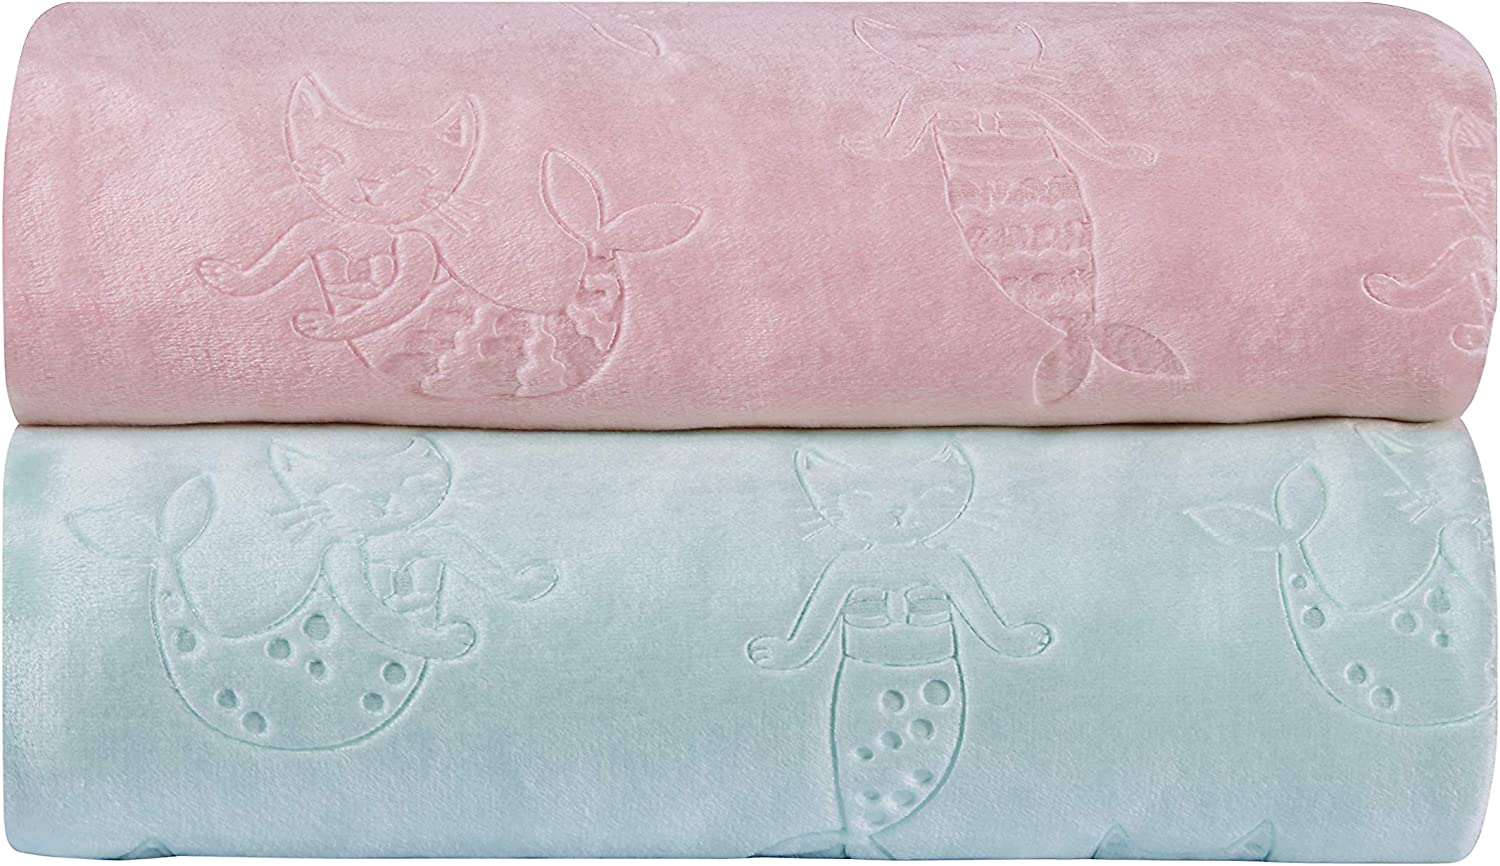 Pink Mermaid Available in Mermaid Cats and Unicorn Designs Colors Include Pink Kute Kids Embossed Velvet Plush Girls Twin Blanket Purple and Grey Super Soft and Ultra Cozy Aqua